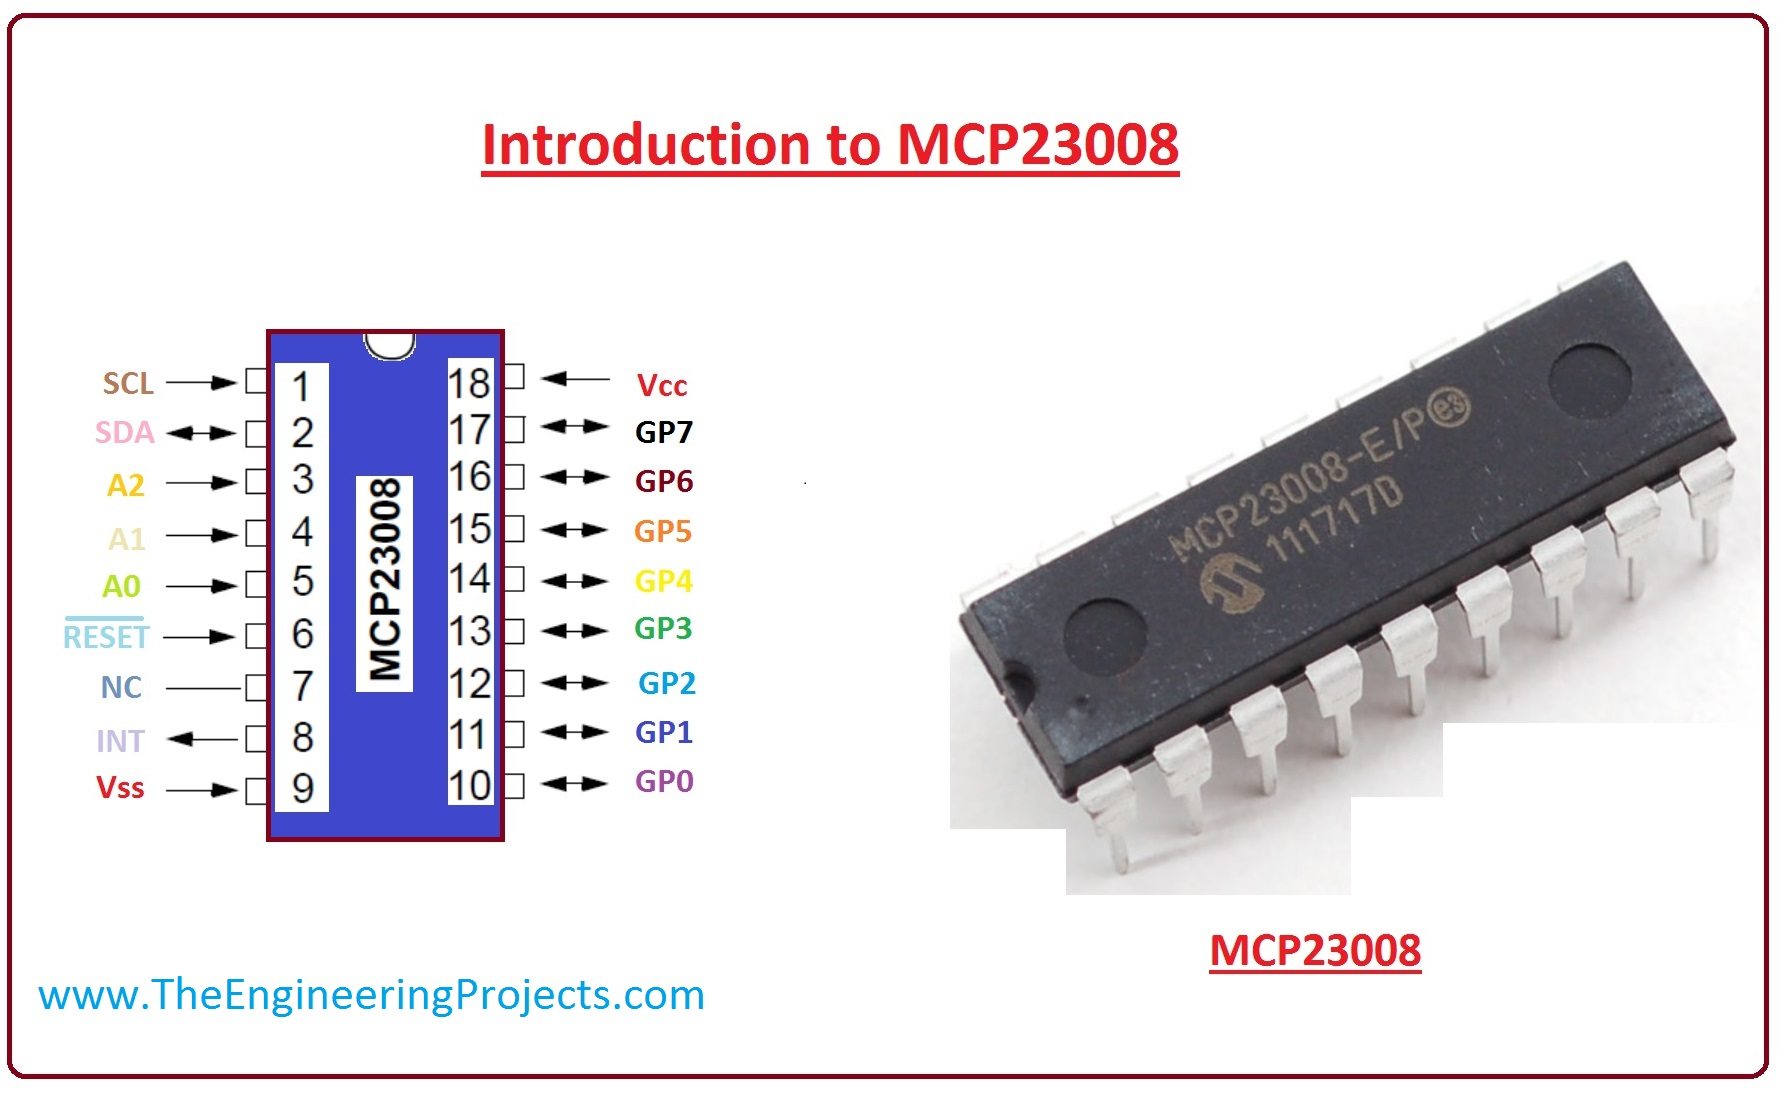 introduction to mcp23008, mcp23008 pinout, mcp23008 working,mcp23008 application, mcp23008 features, mcp23008 arduino interfacing, mcp23008 applications, mcp23008